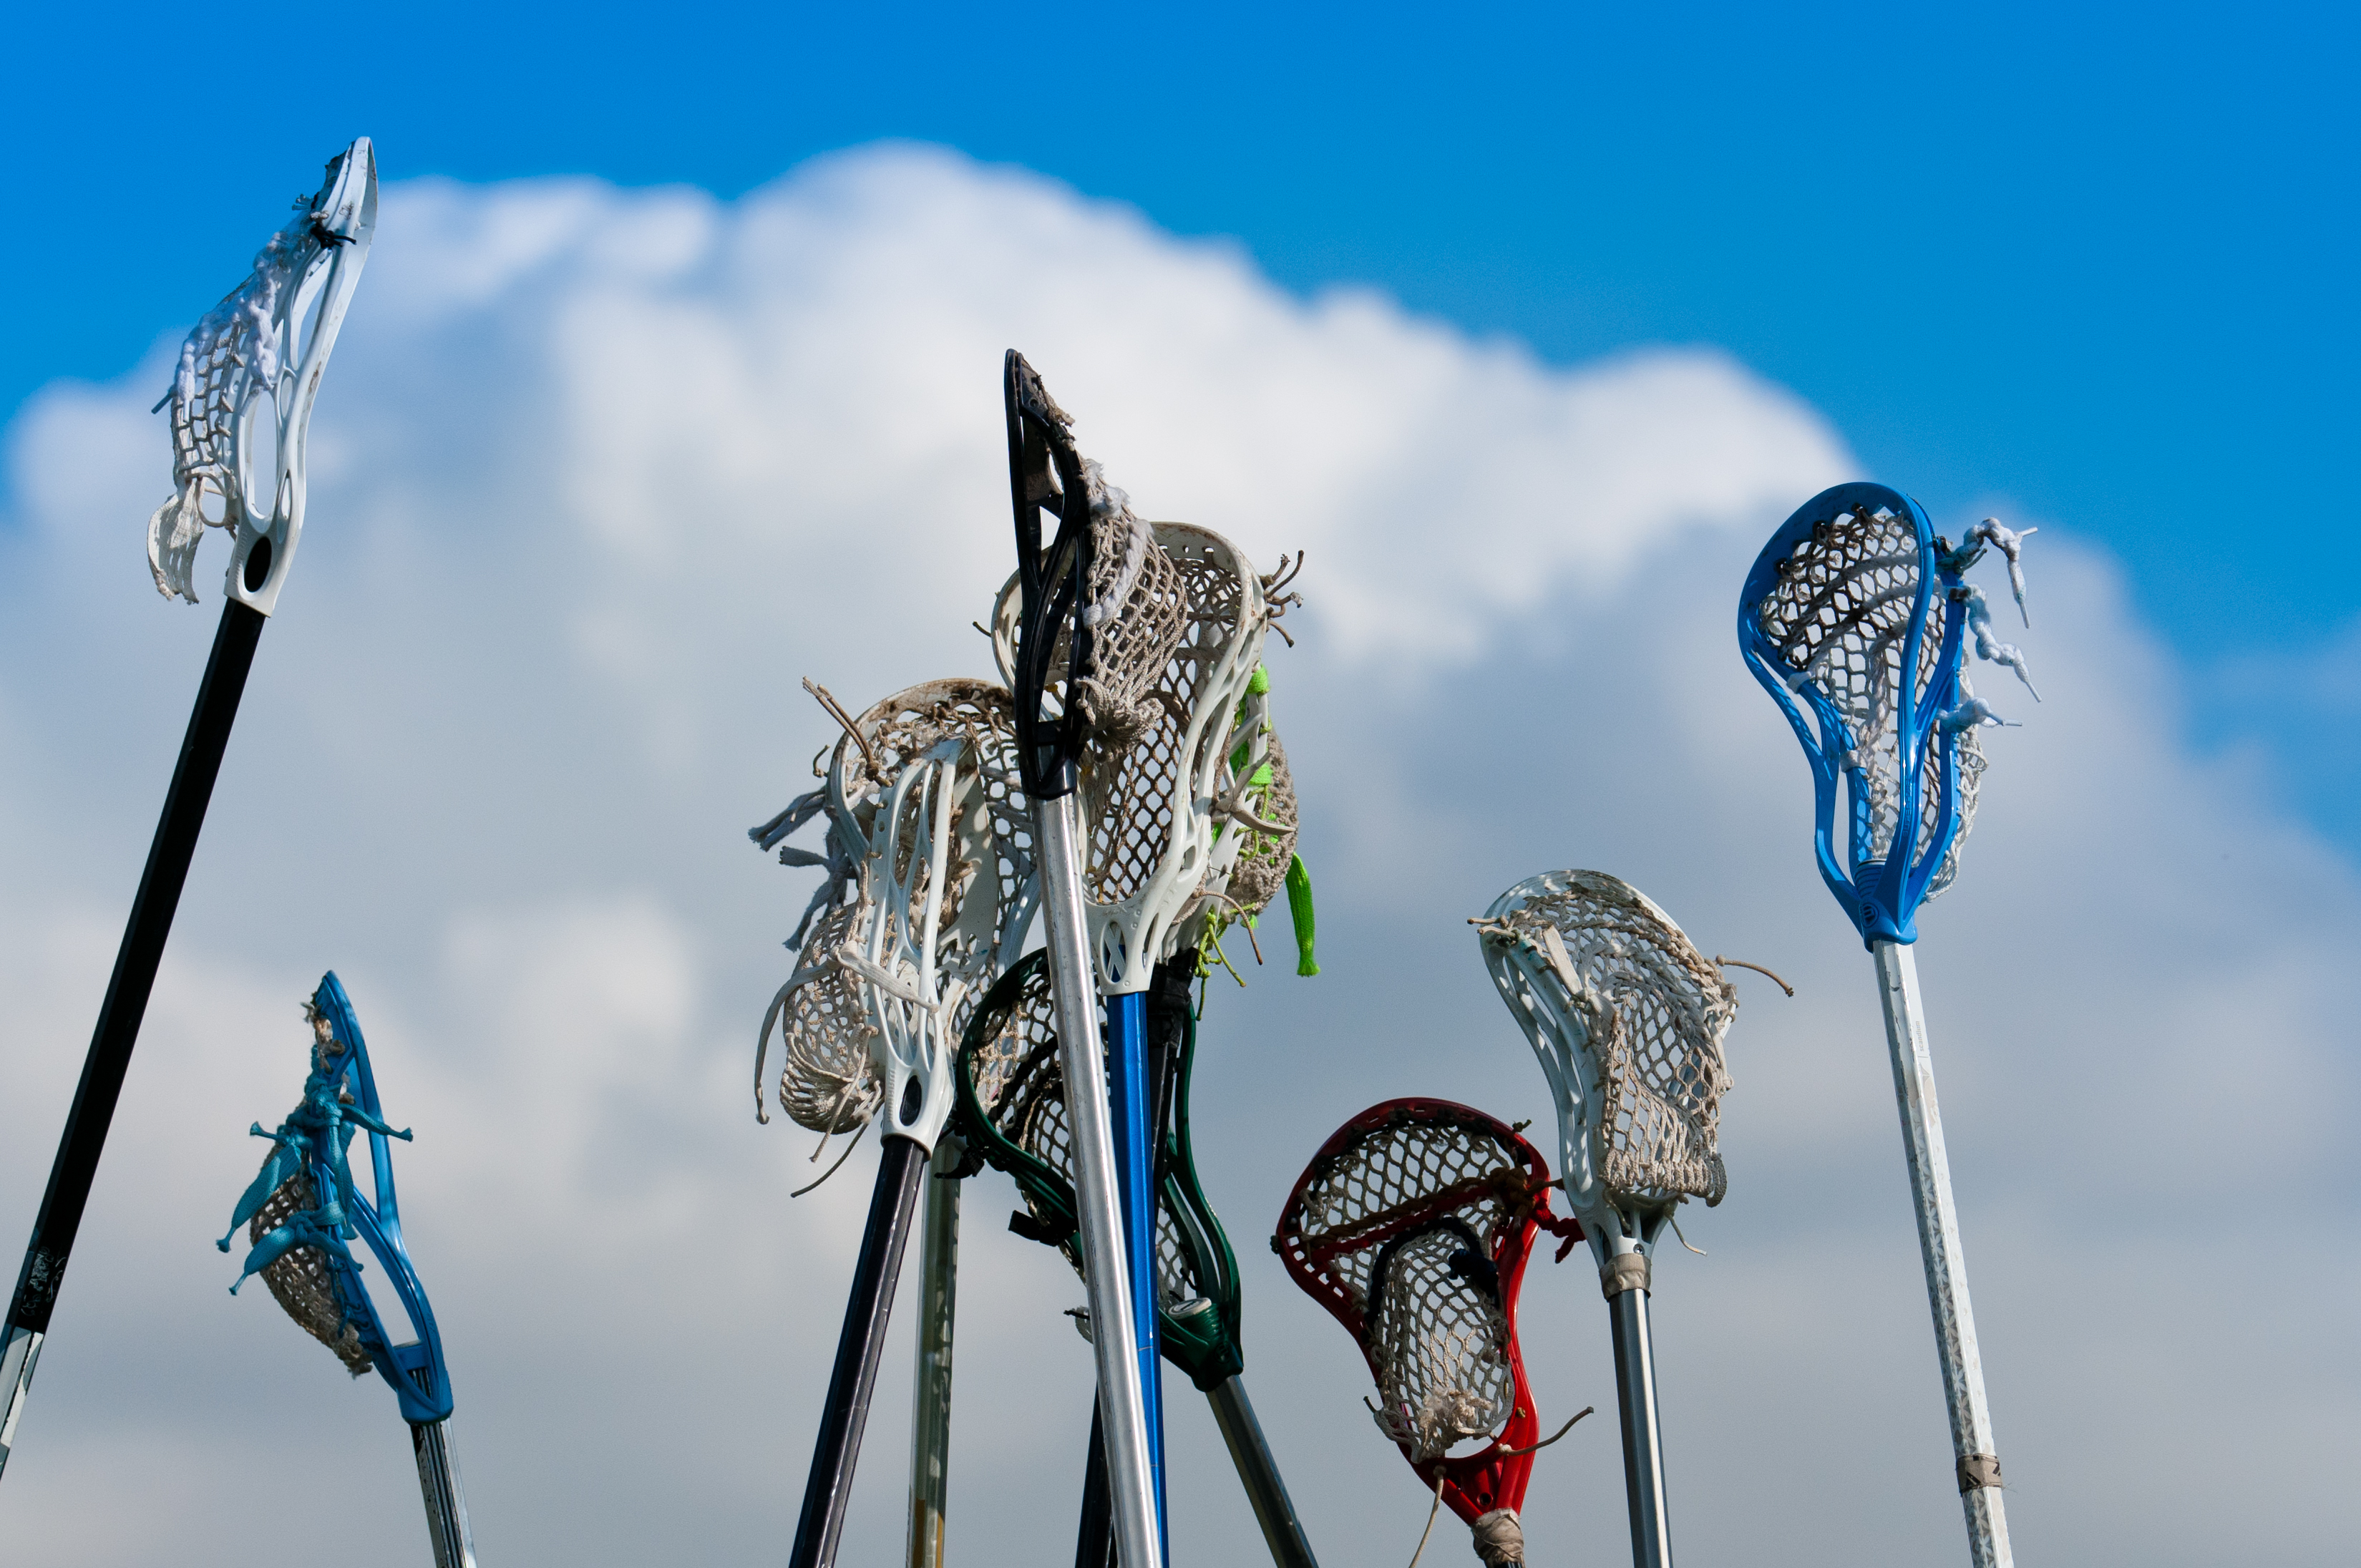 lax sticks at lacrosse training